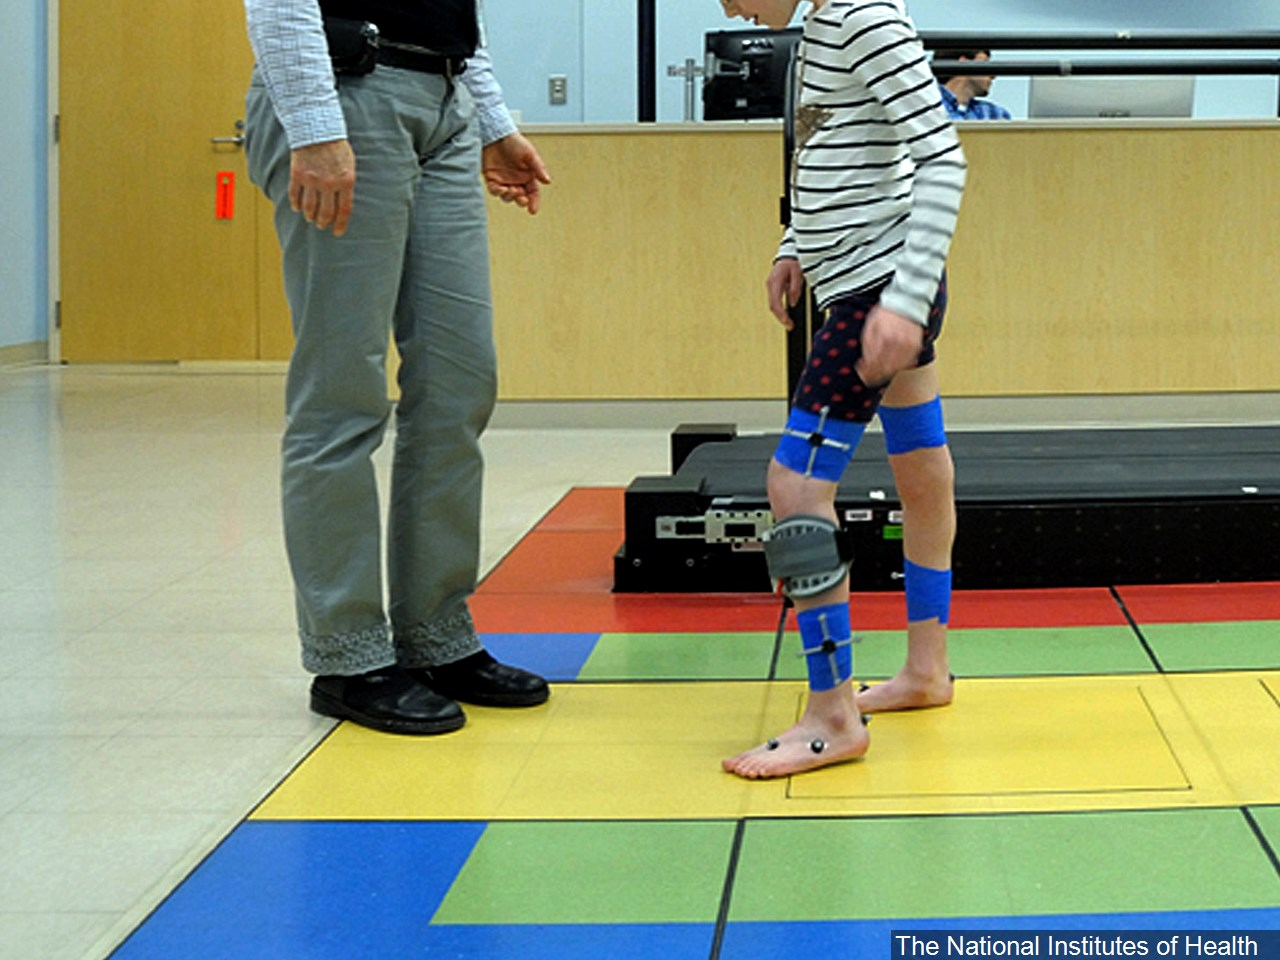 Patrick Henry Community College (PHCC) is on its way to having an accredited physical therapy assistant (PTA) program.